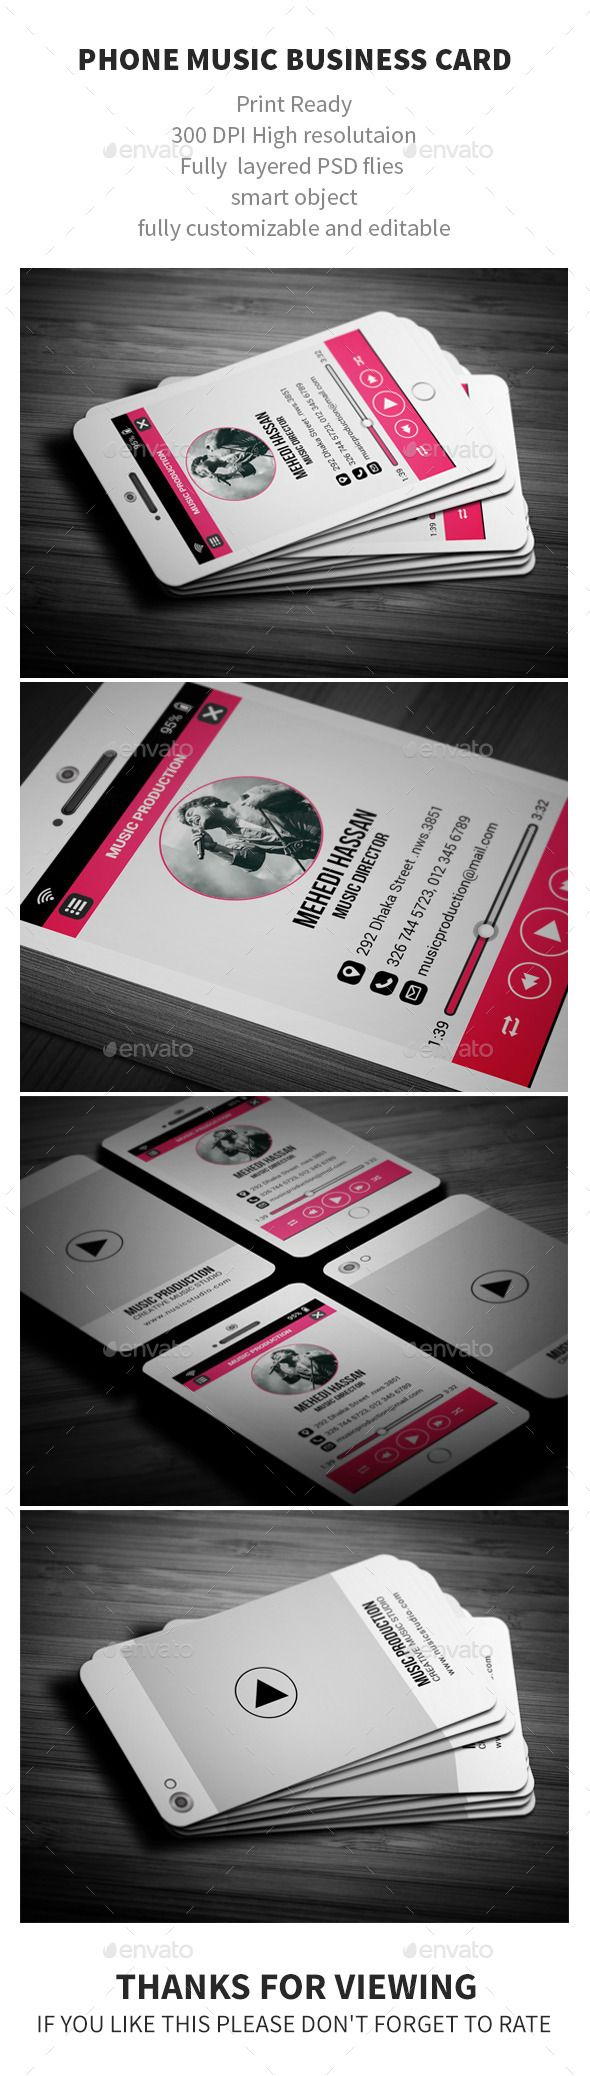 Phone Music Business Card Template #design Download: http://graphicriver.net/item/phone-music-business-card/12245401?ref=ksioks